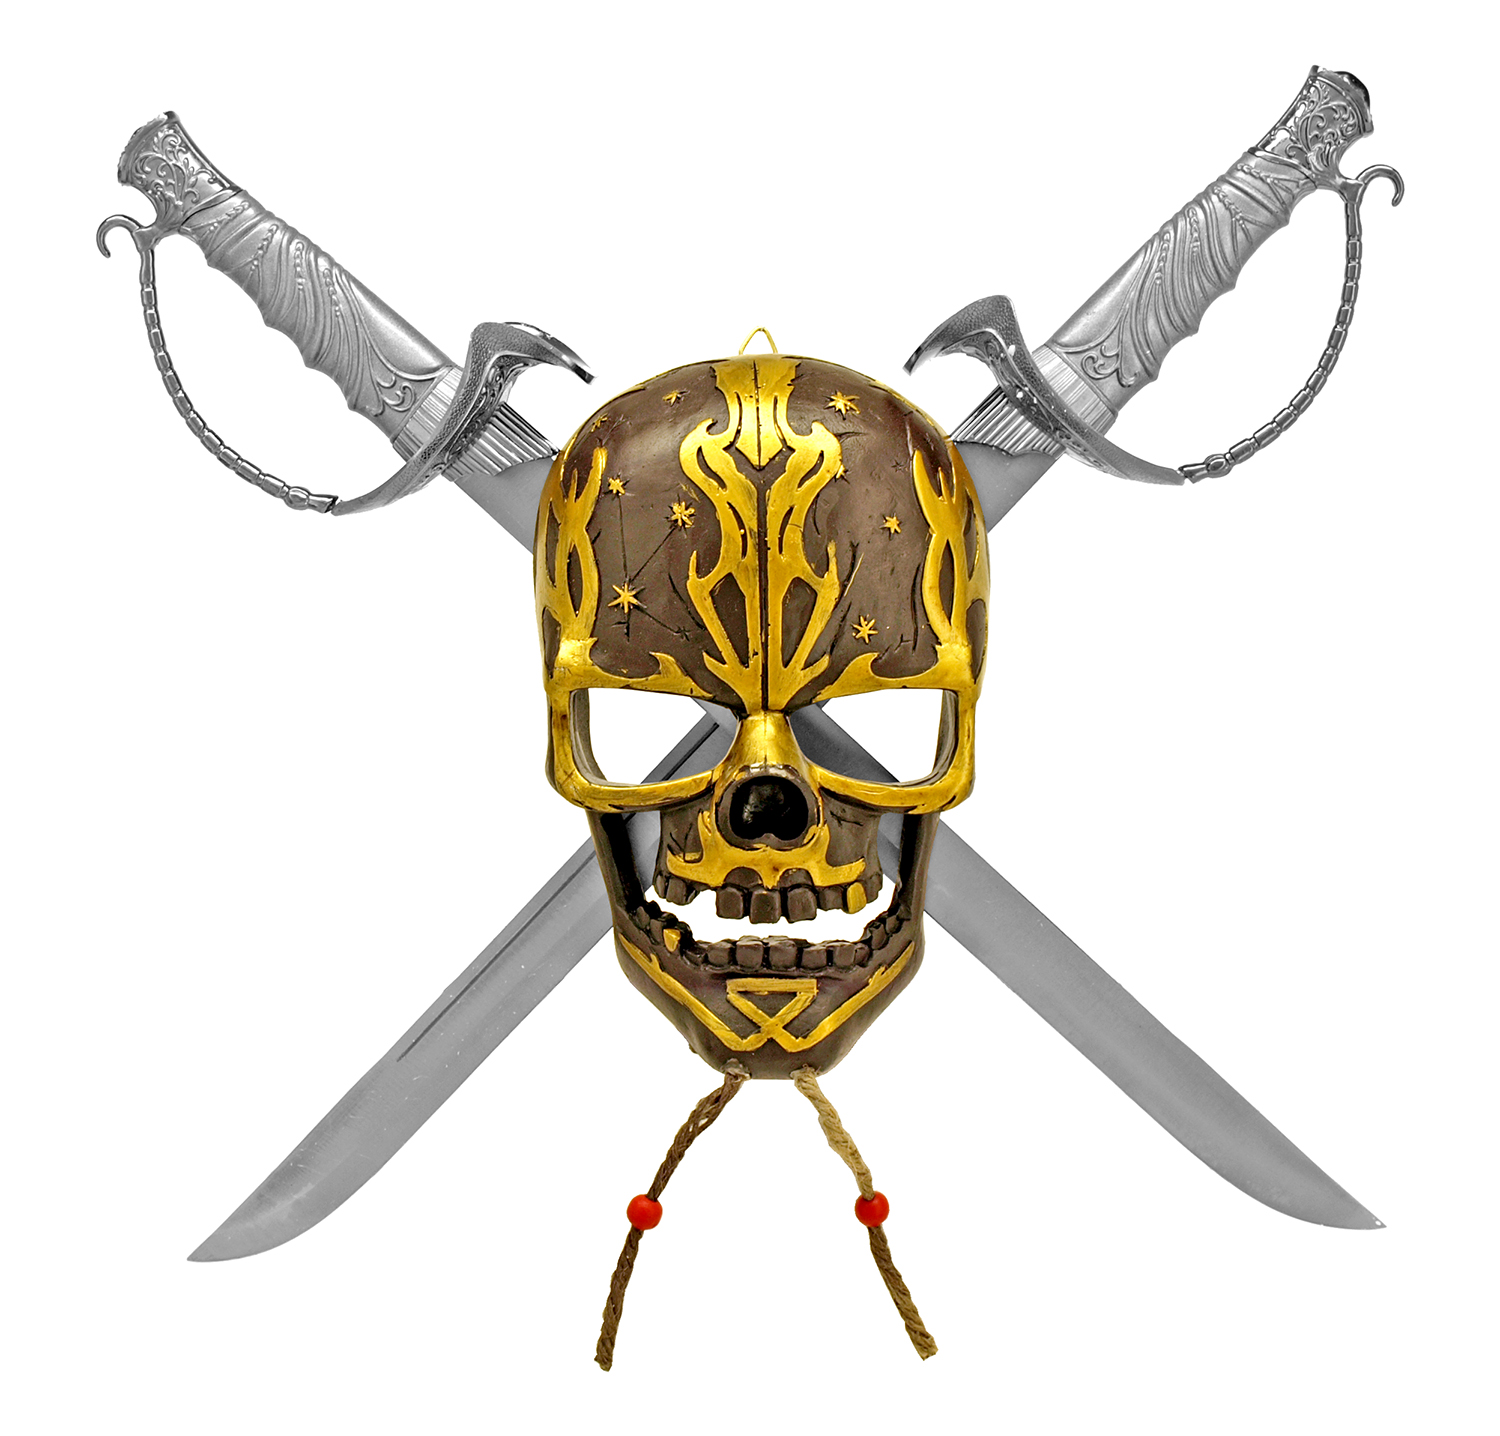 Pirate Skull with Crossed Blades